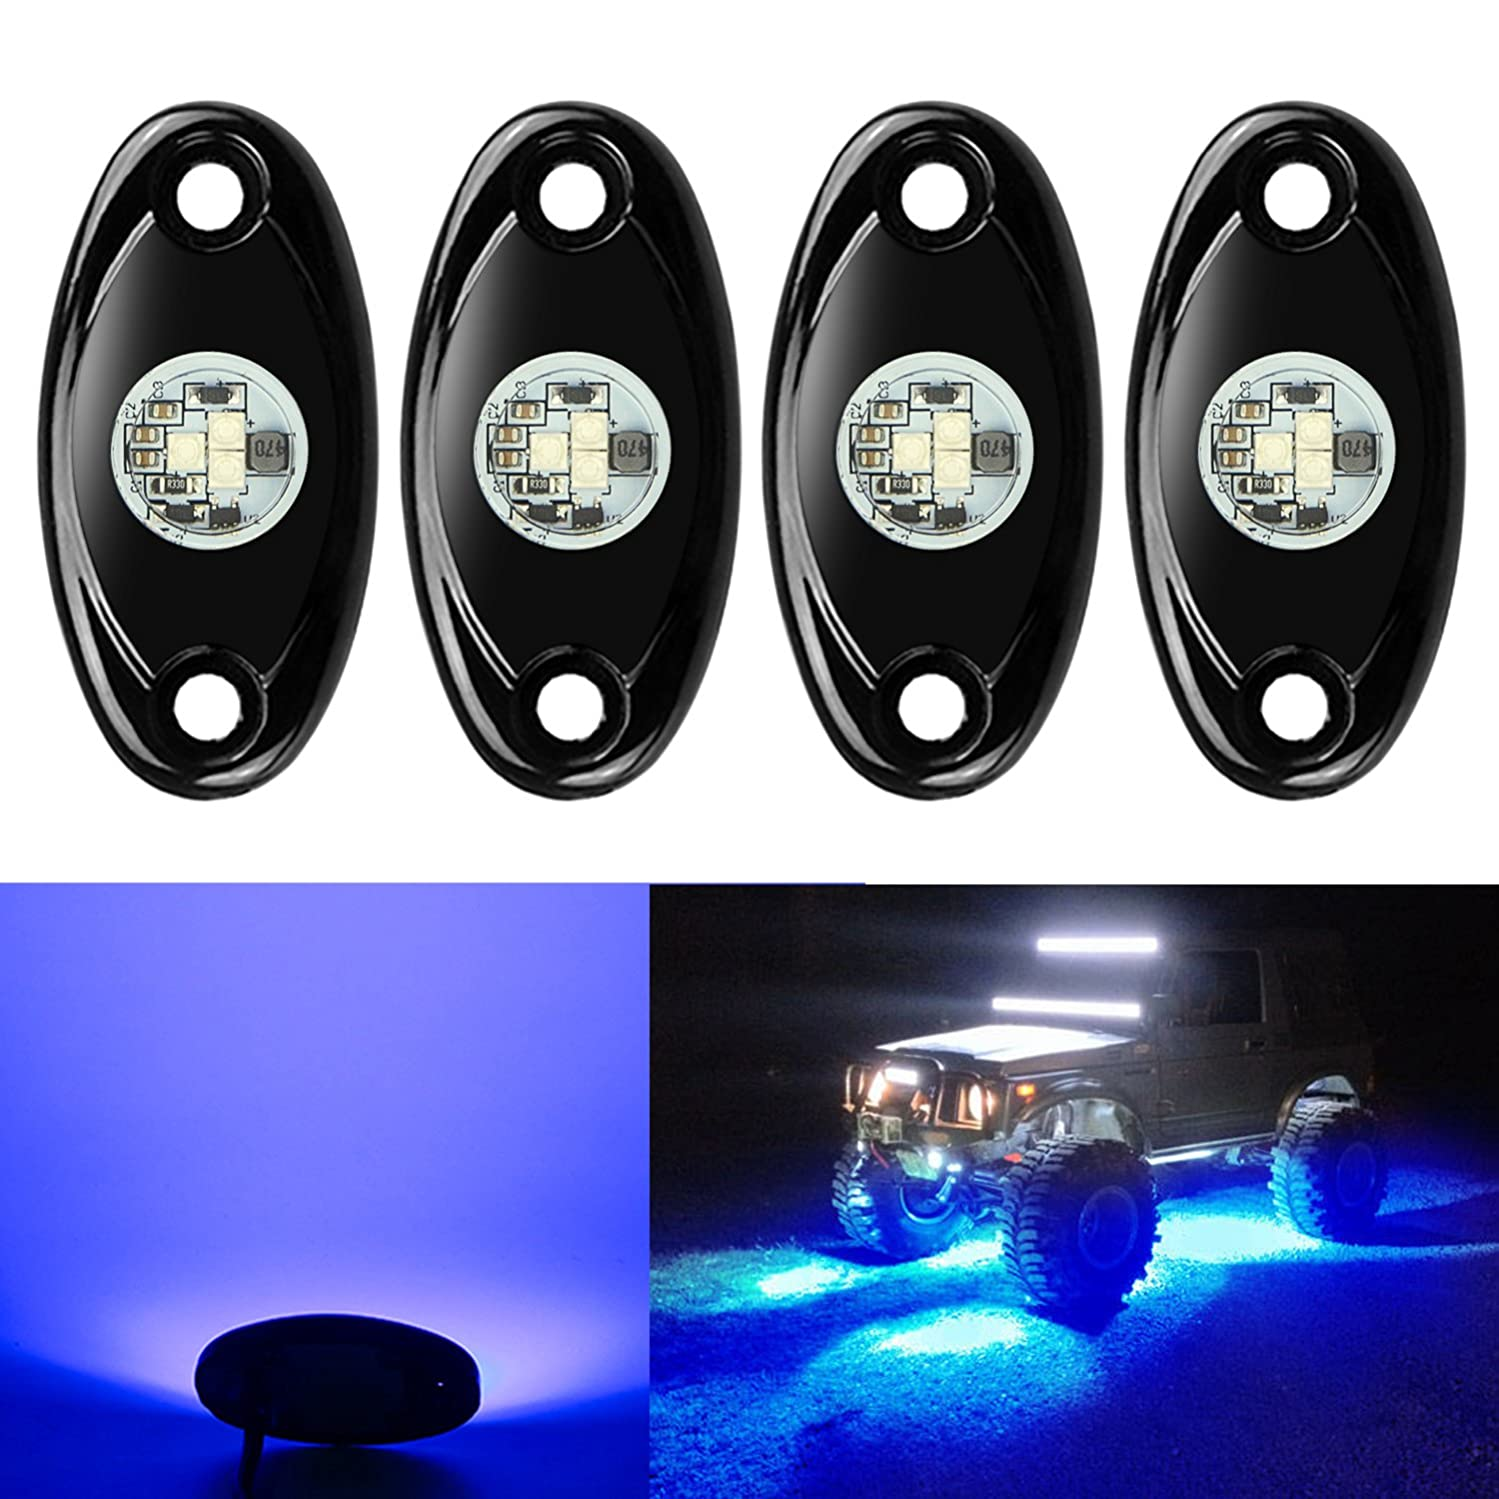 4 Pods LED Rock Lights, Ampper Waterproof LED Neon Underglow Light for Car Truck ATV UTV SUV Jeep Offroad Boat Underbody Glow Trail Rig Lamp (Blue)